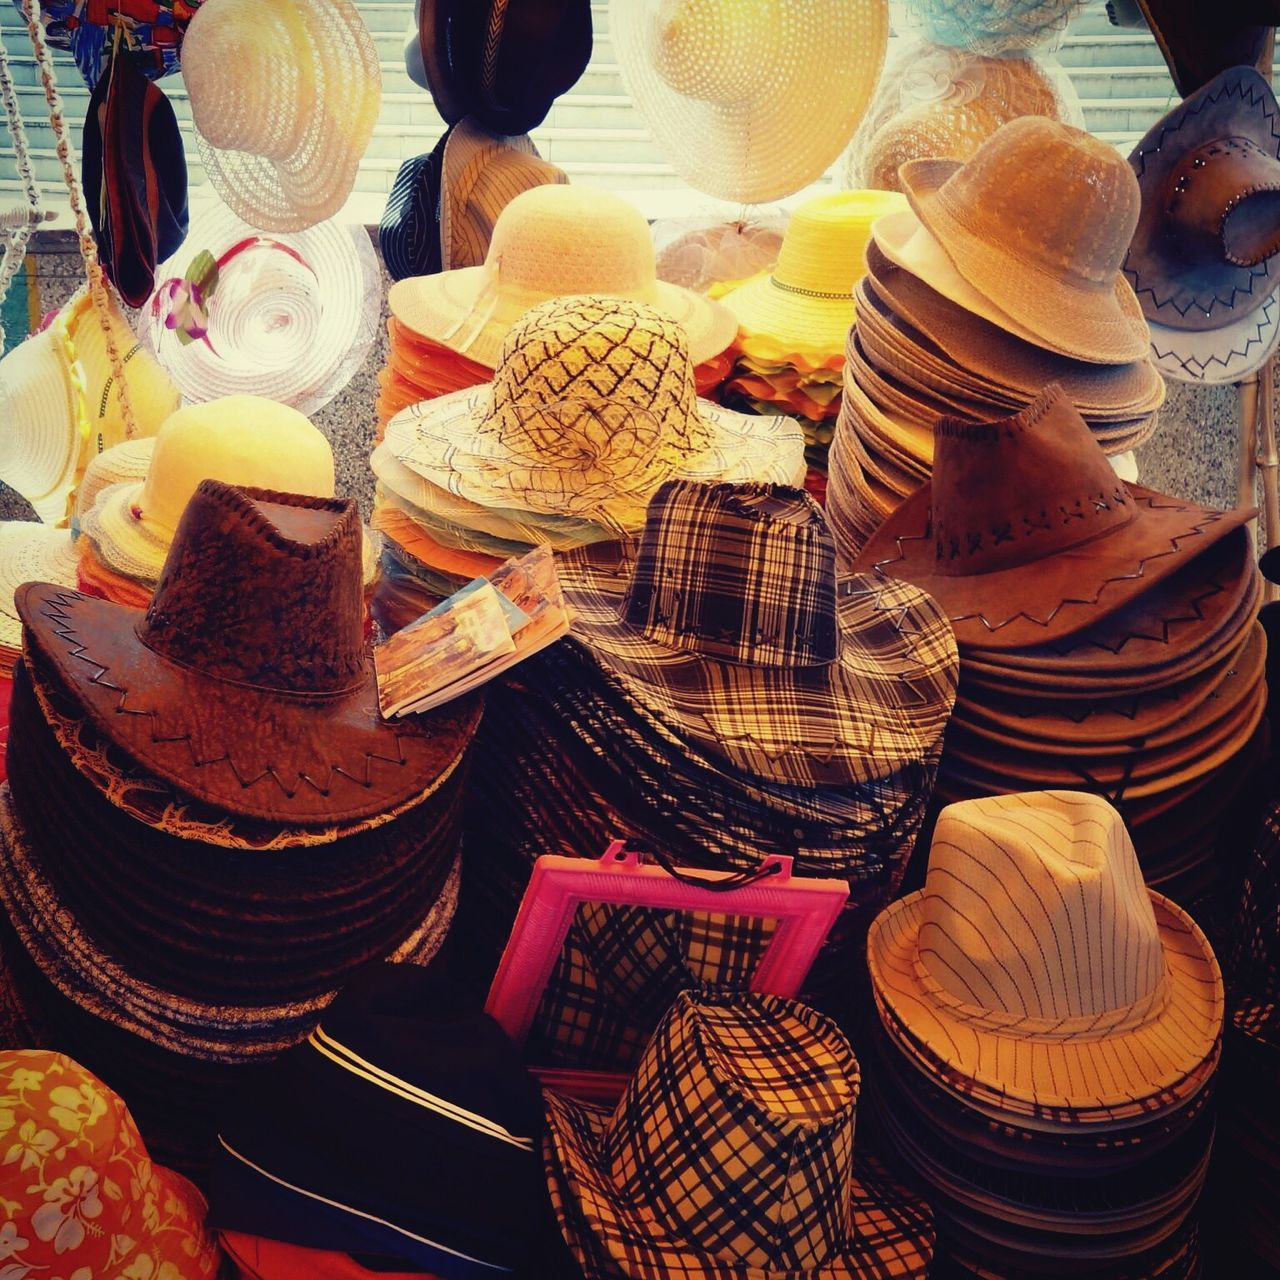 Various Hats For Sale At Street Market